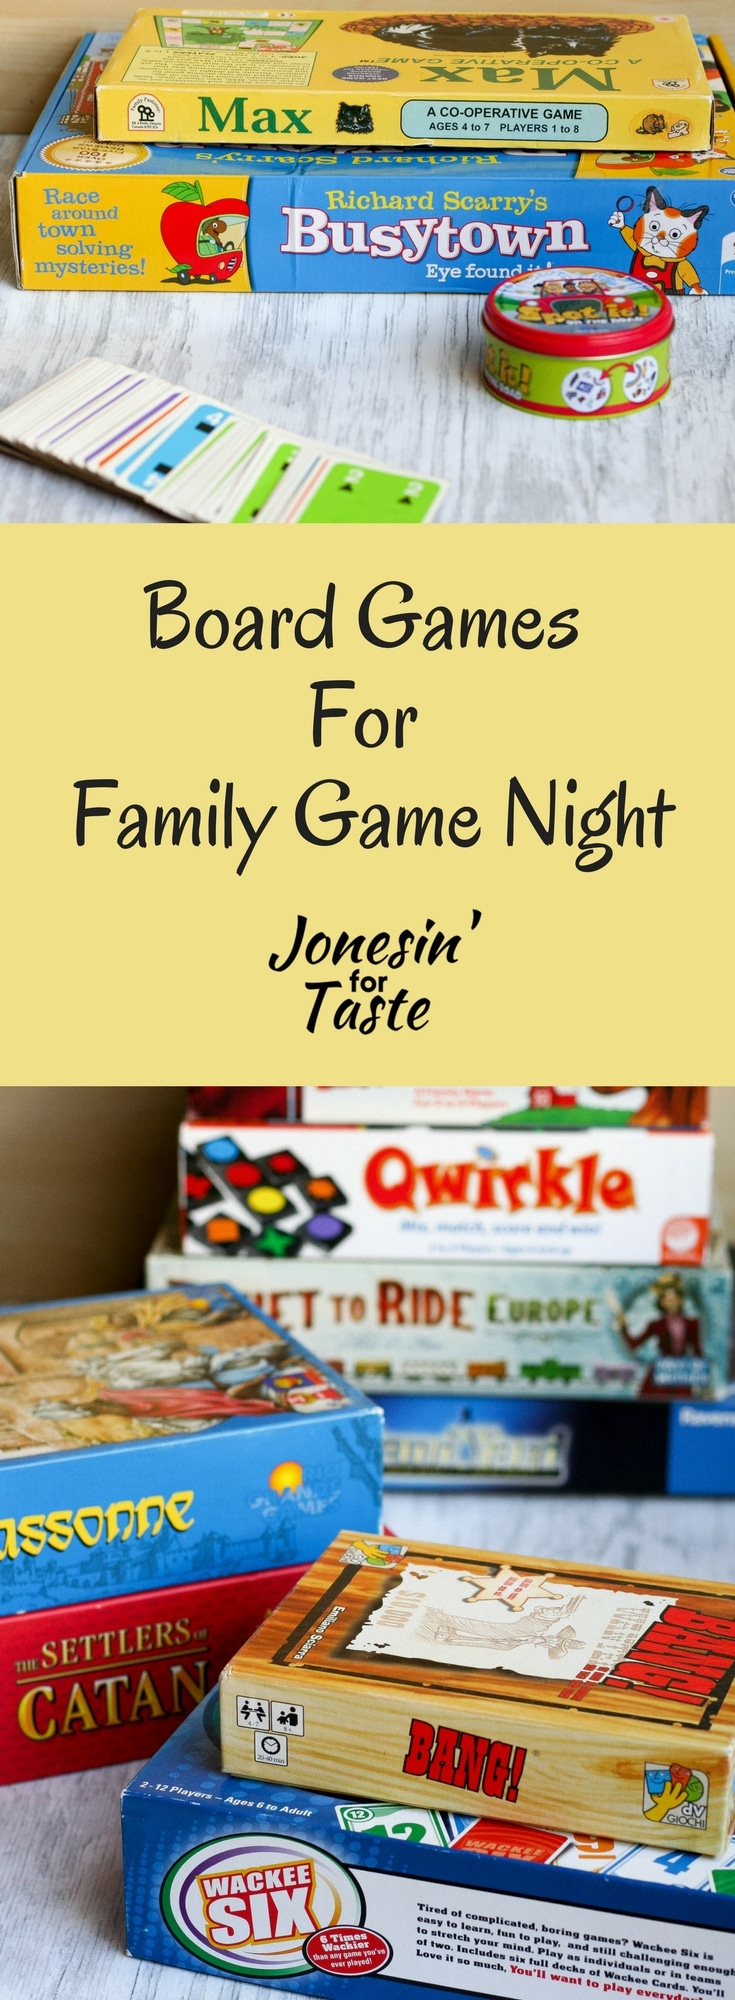 With over 15 board games for family game night it doesn't need to mean a boring night in. There are lots of board games perfect for older and younger children that the whole family can enjoy. #familynight #boardgames #familygamenight